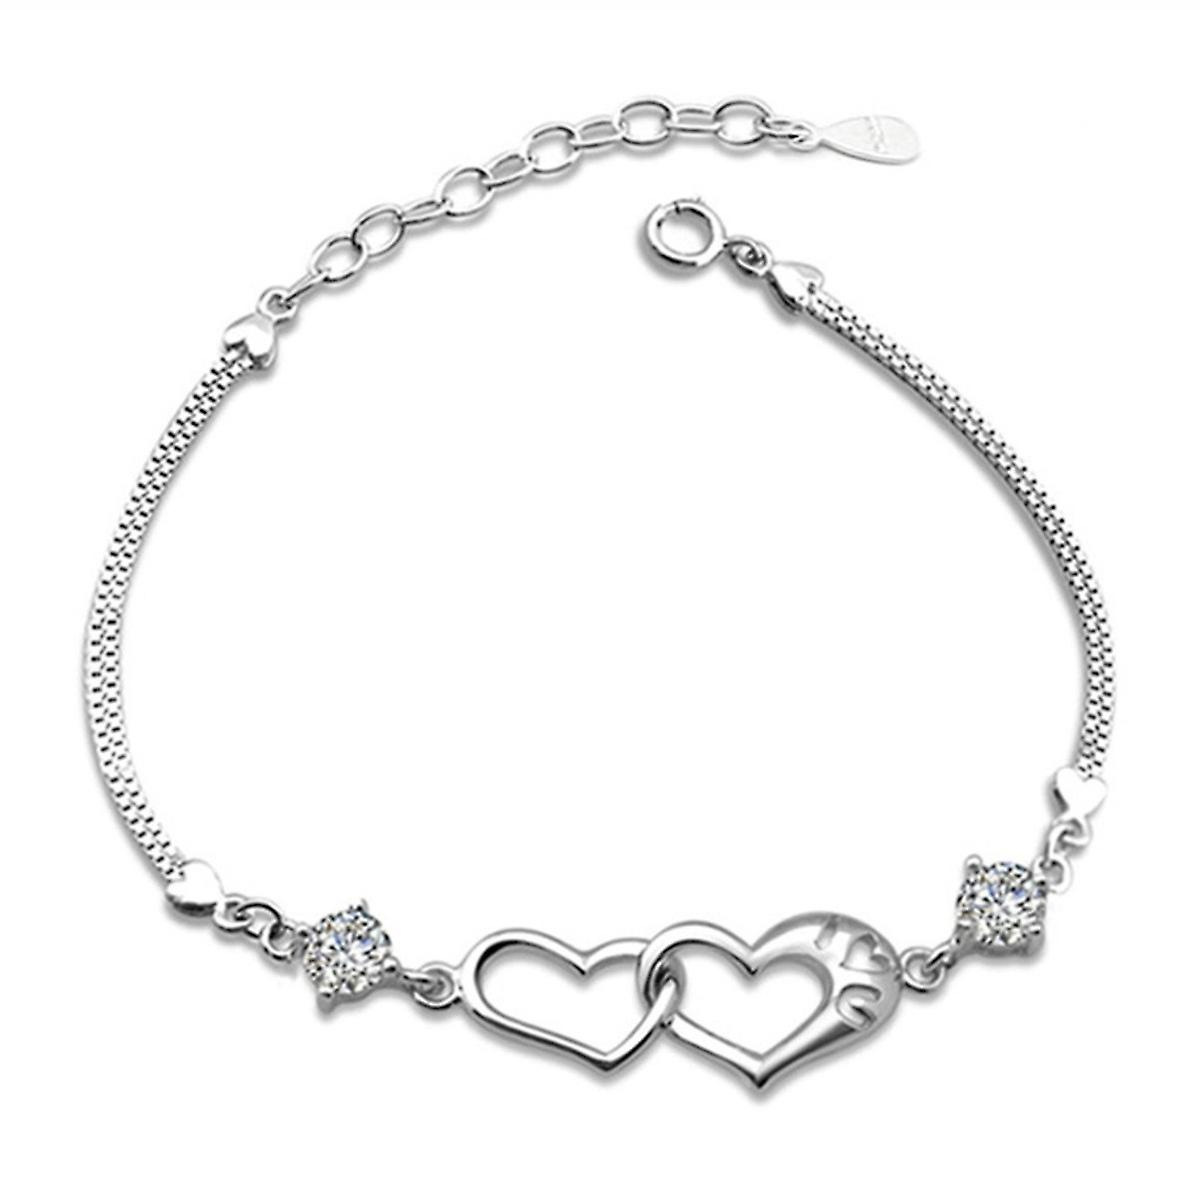 925 Sterling Silver Solid Double Heart Bracelet With Stones With Free Studs